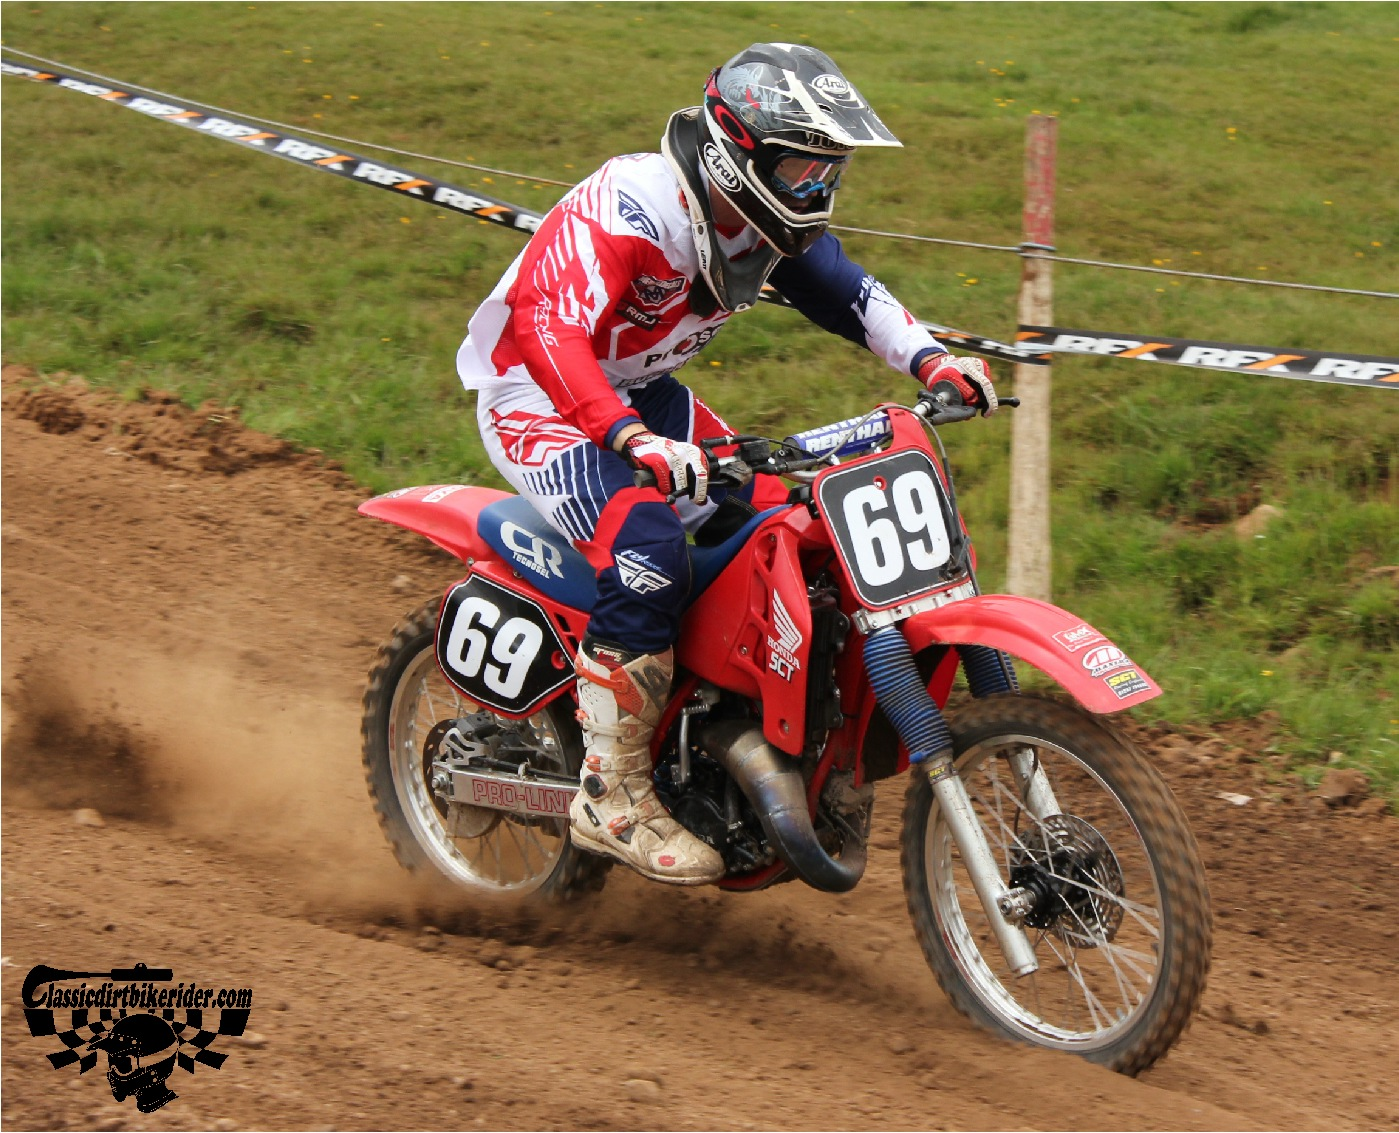 classicdirtbikerider.com-national-twinshock-championship-2015-Garstang-heavy on the brakes Honda CR